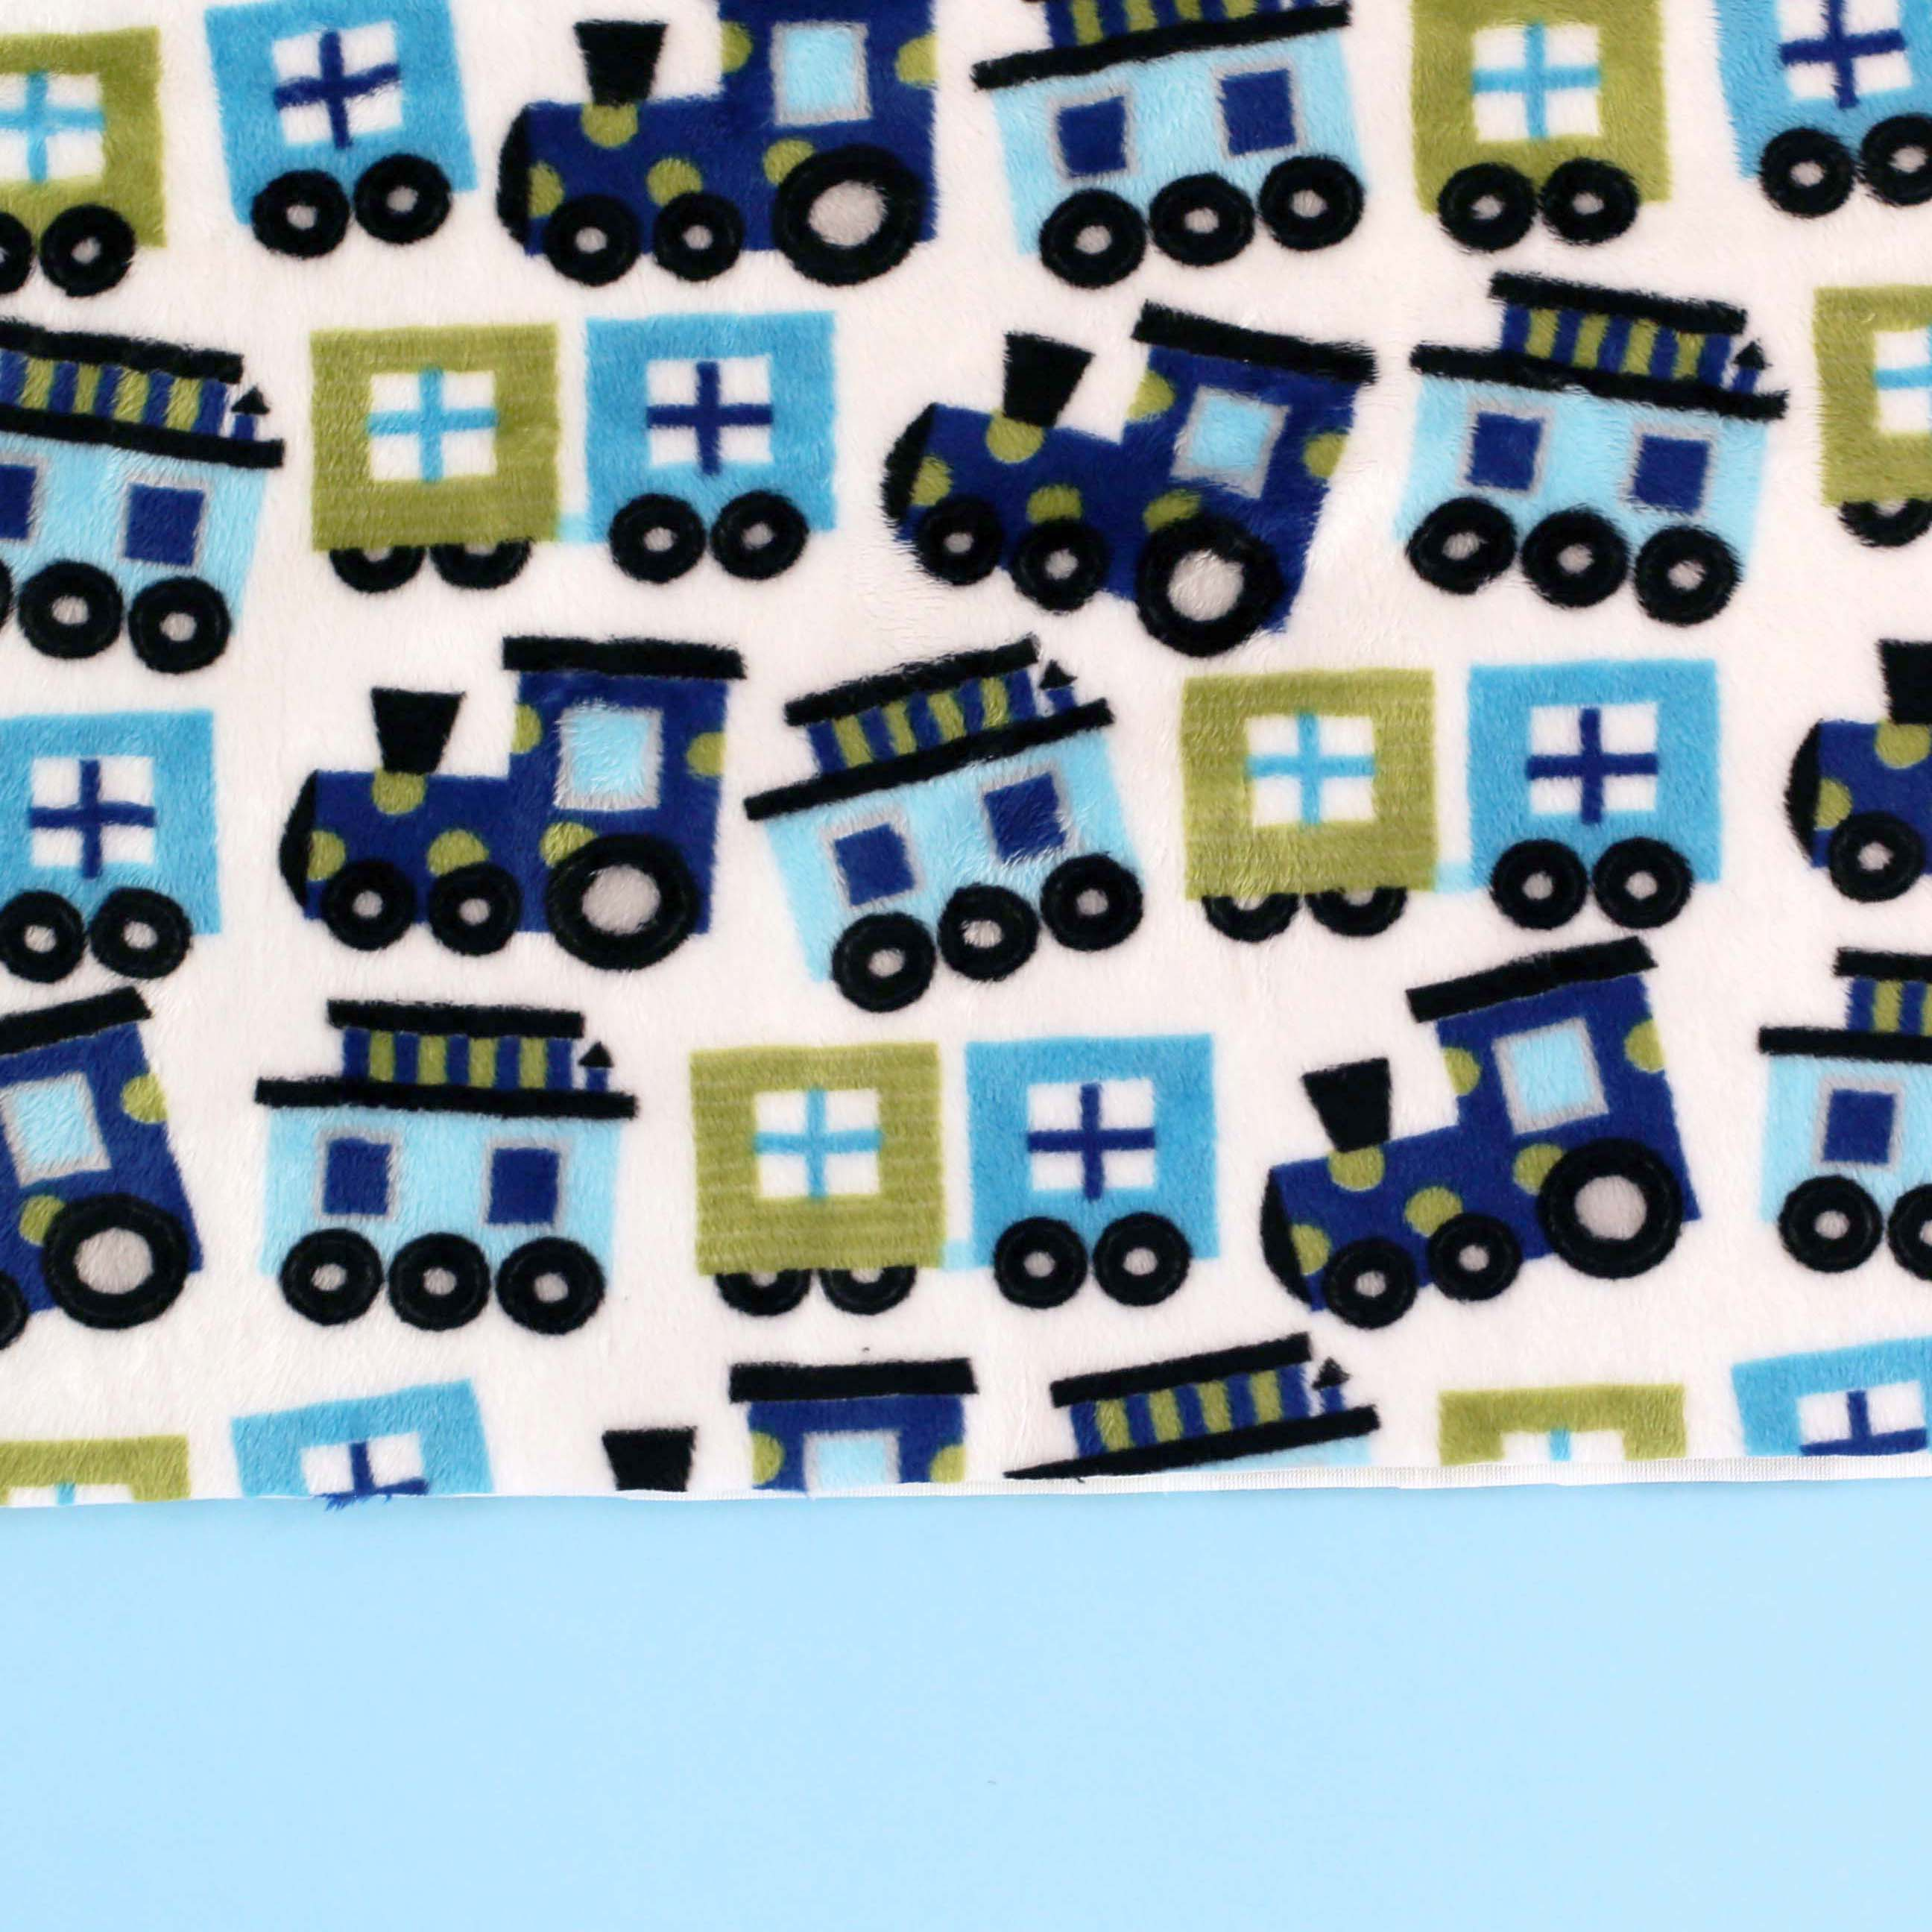 Ready Set Go by Ann Kelle, a Robert Kaufman Cuddle Collection, so cute for DIY sewing projects - full of planes, trains and automobiles